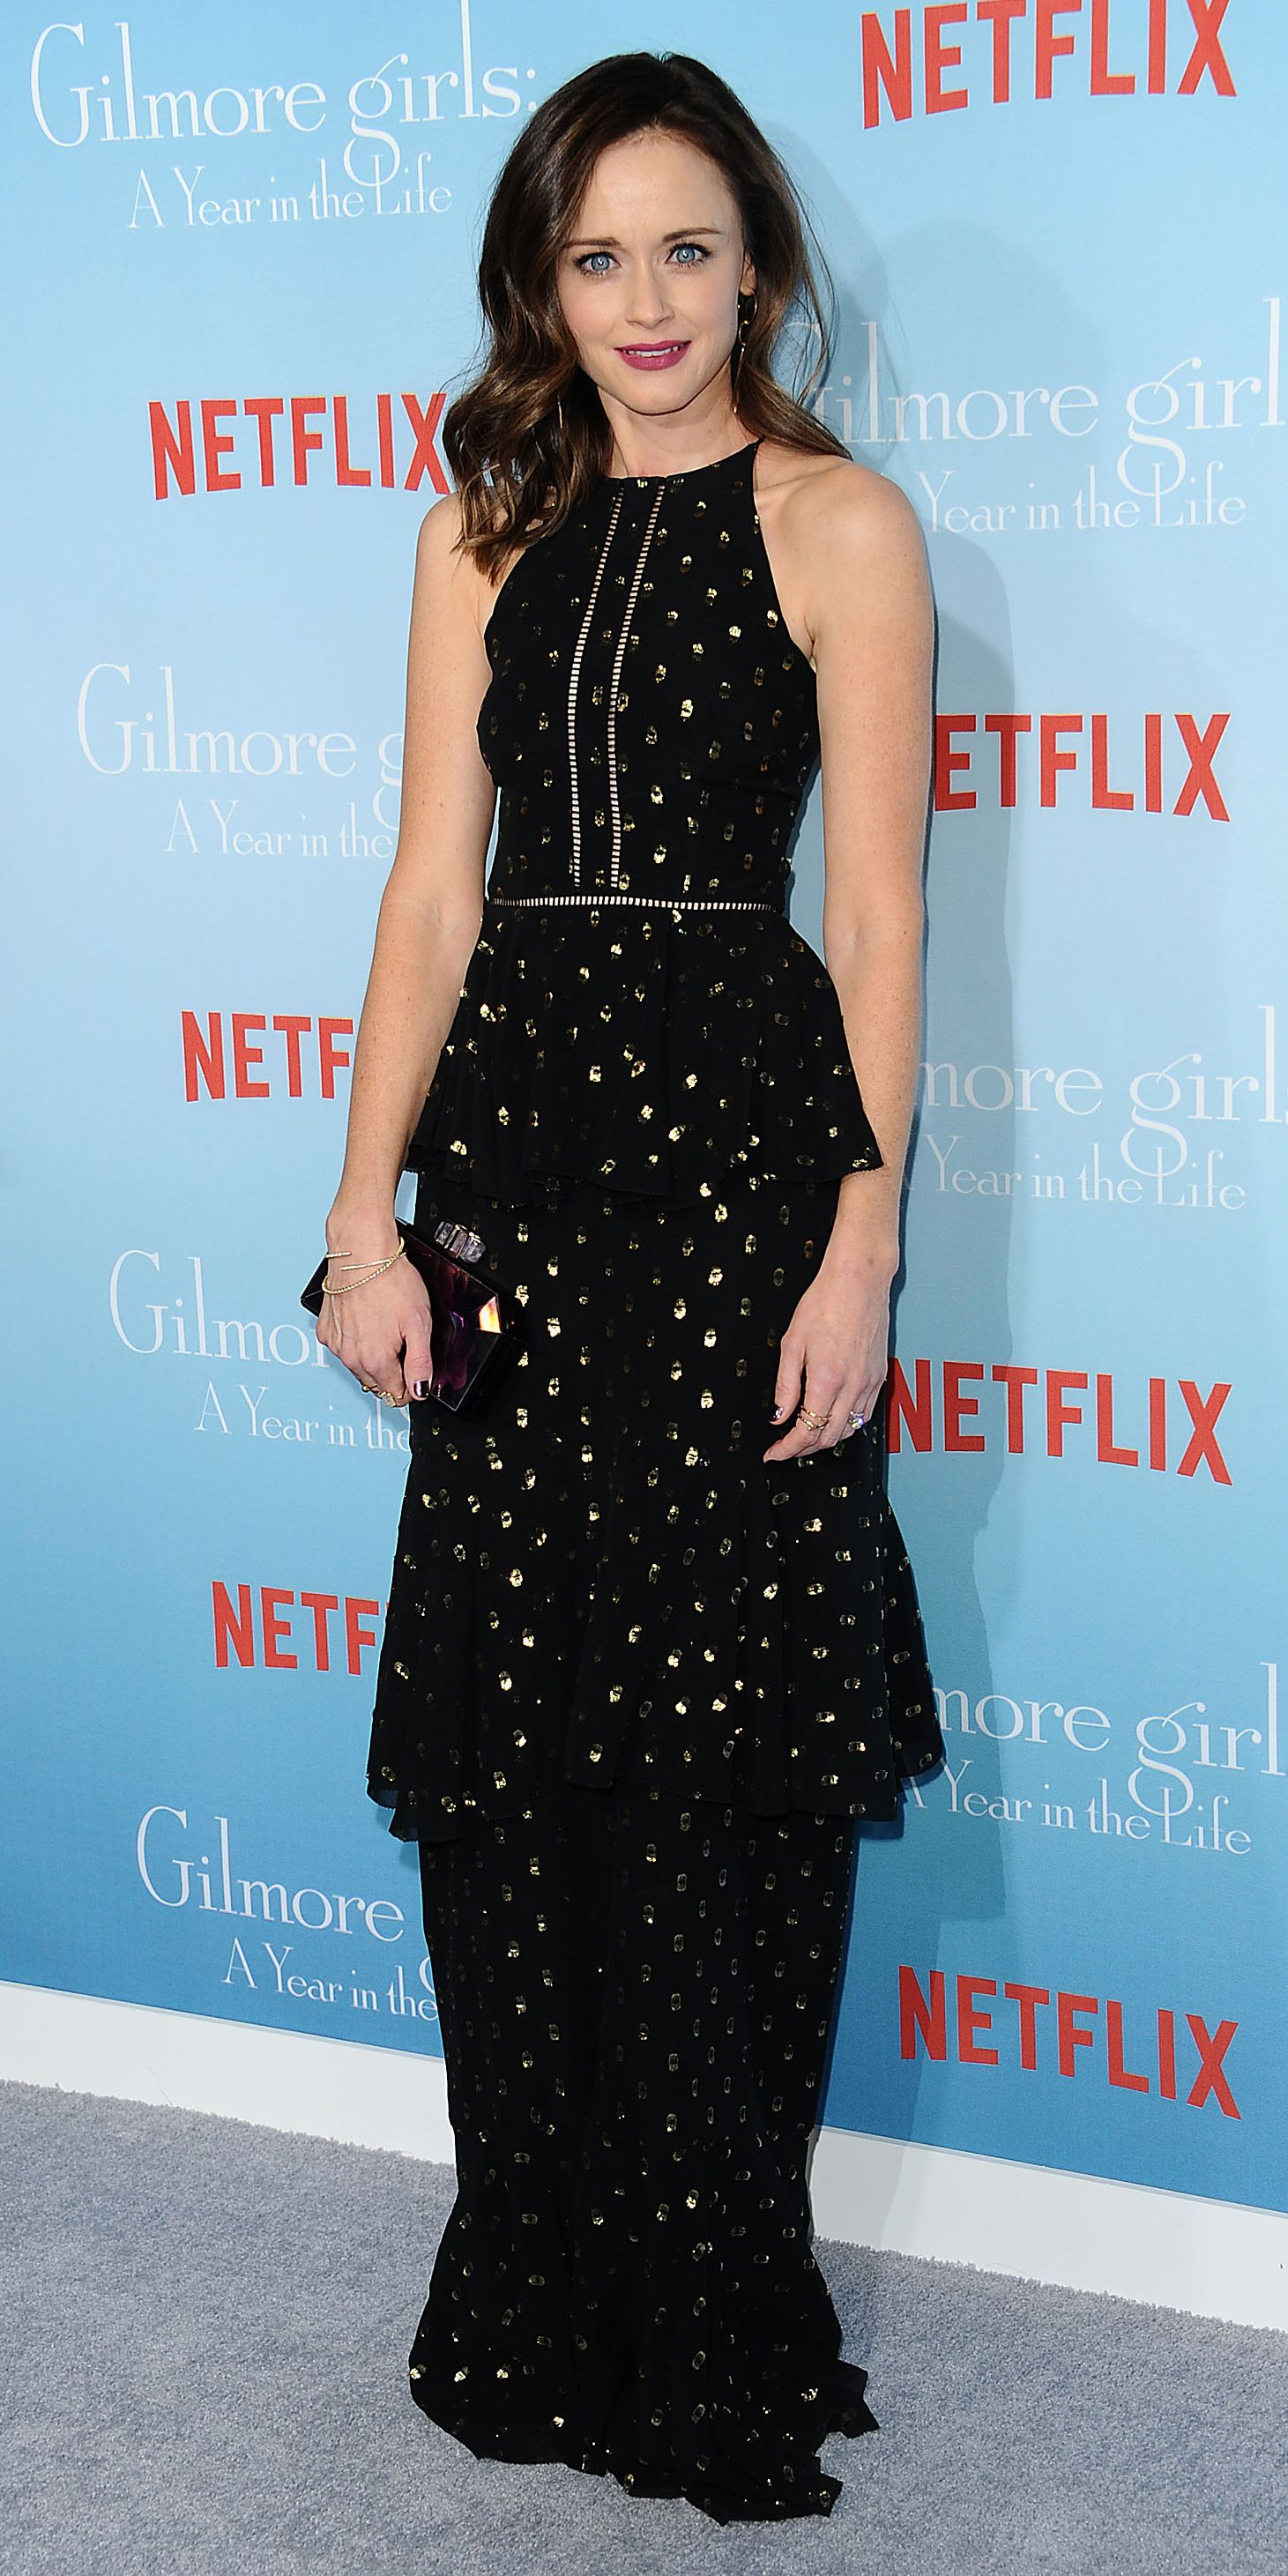 Rory is all grown up! Alexis Bledel hit the premiere of Netflix's Gilmore Girls: A Year in the Life in a gold polka-dot ruffled Cynthia Rowley gown , styled with a Judith Leiber clutch, a selection of jewelry by Paige Novick, Bowen, Tara 4779, and Gillian Steinhardt, and Stuart Weitzman sandals.